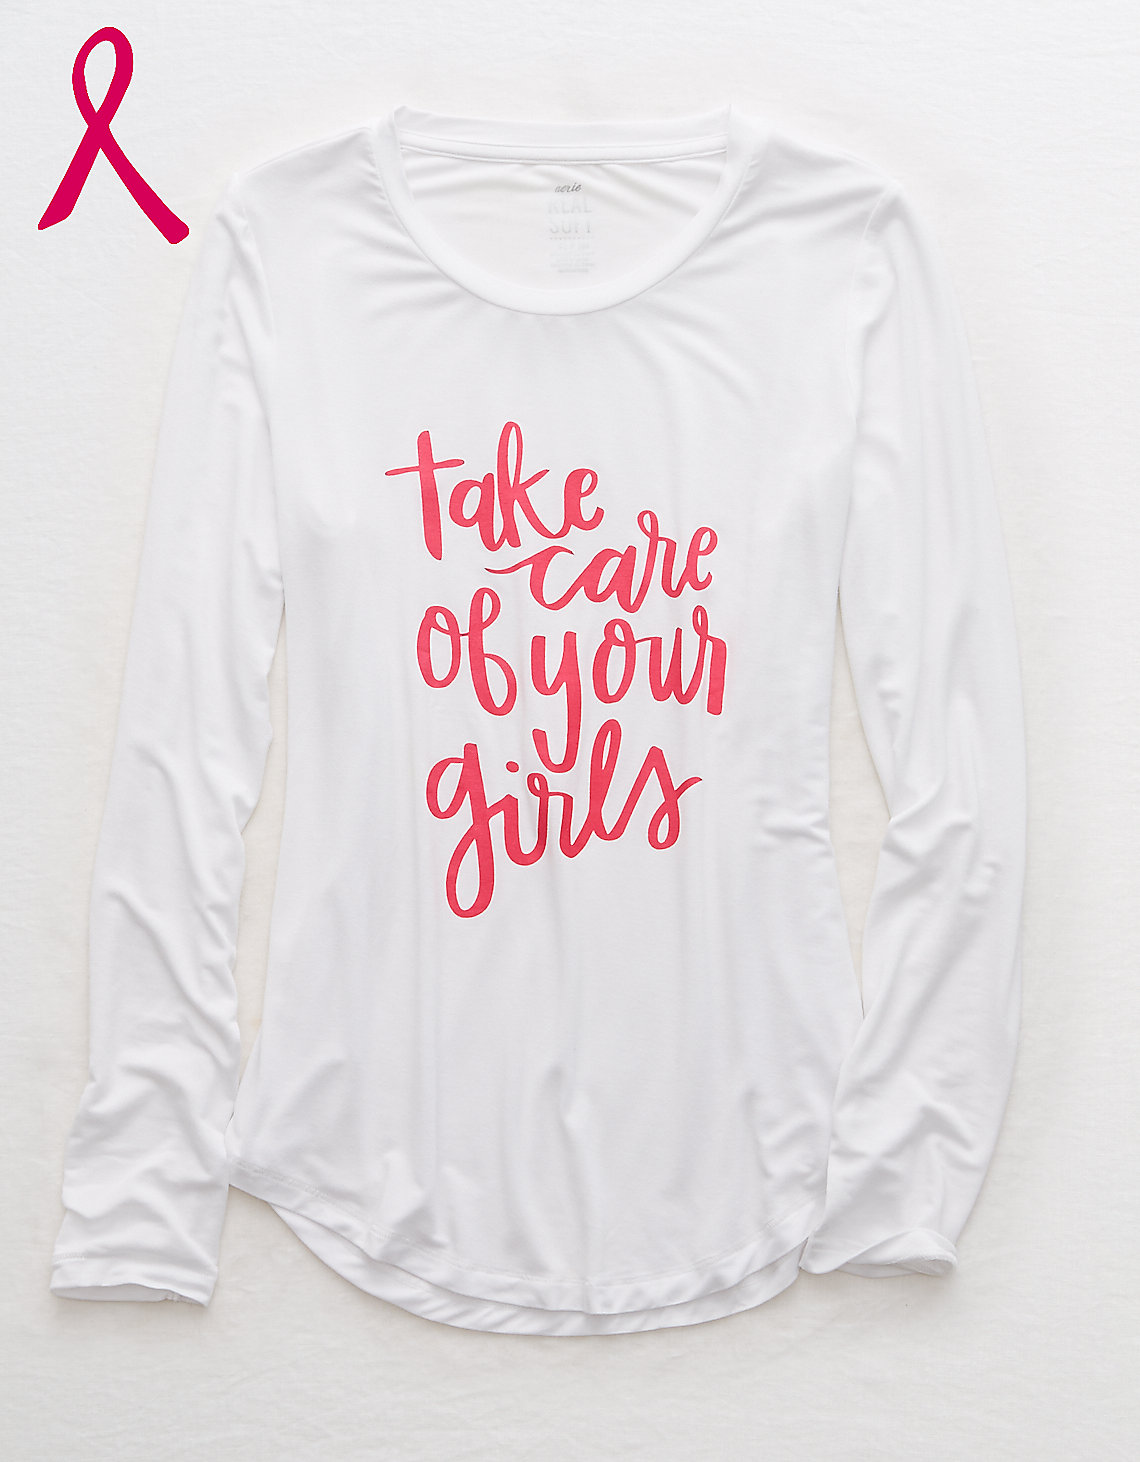 Aerie Supports Tee - 20 Brands Helping Battle Breast Cancer - Breast Cancer Research - Giving Back - Paying It Forward - Breast Cancer Awareness - Companies That Donate To Charity - Think Pink In October - October Breast Cancer Month - Communikait by Kait Hanson